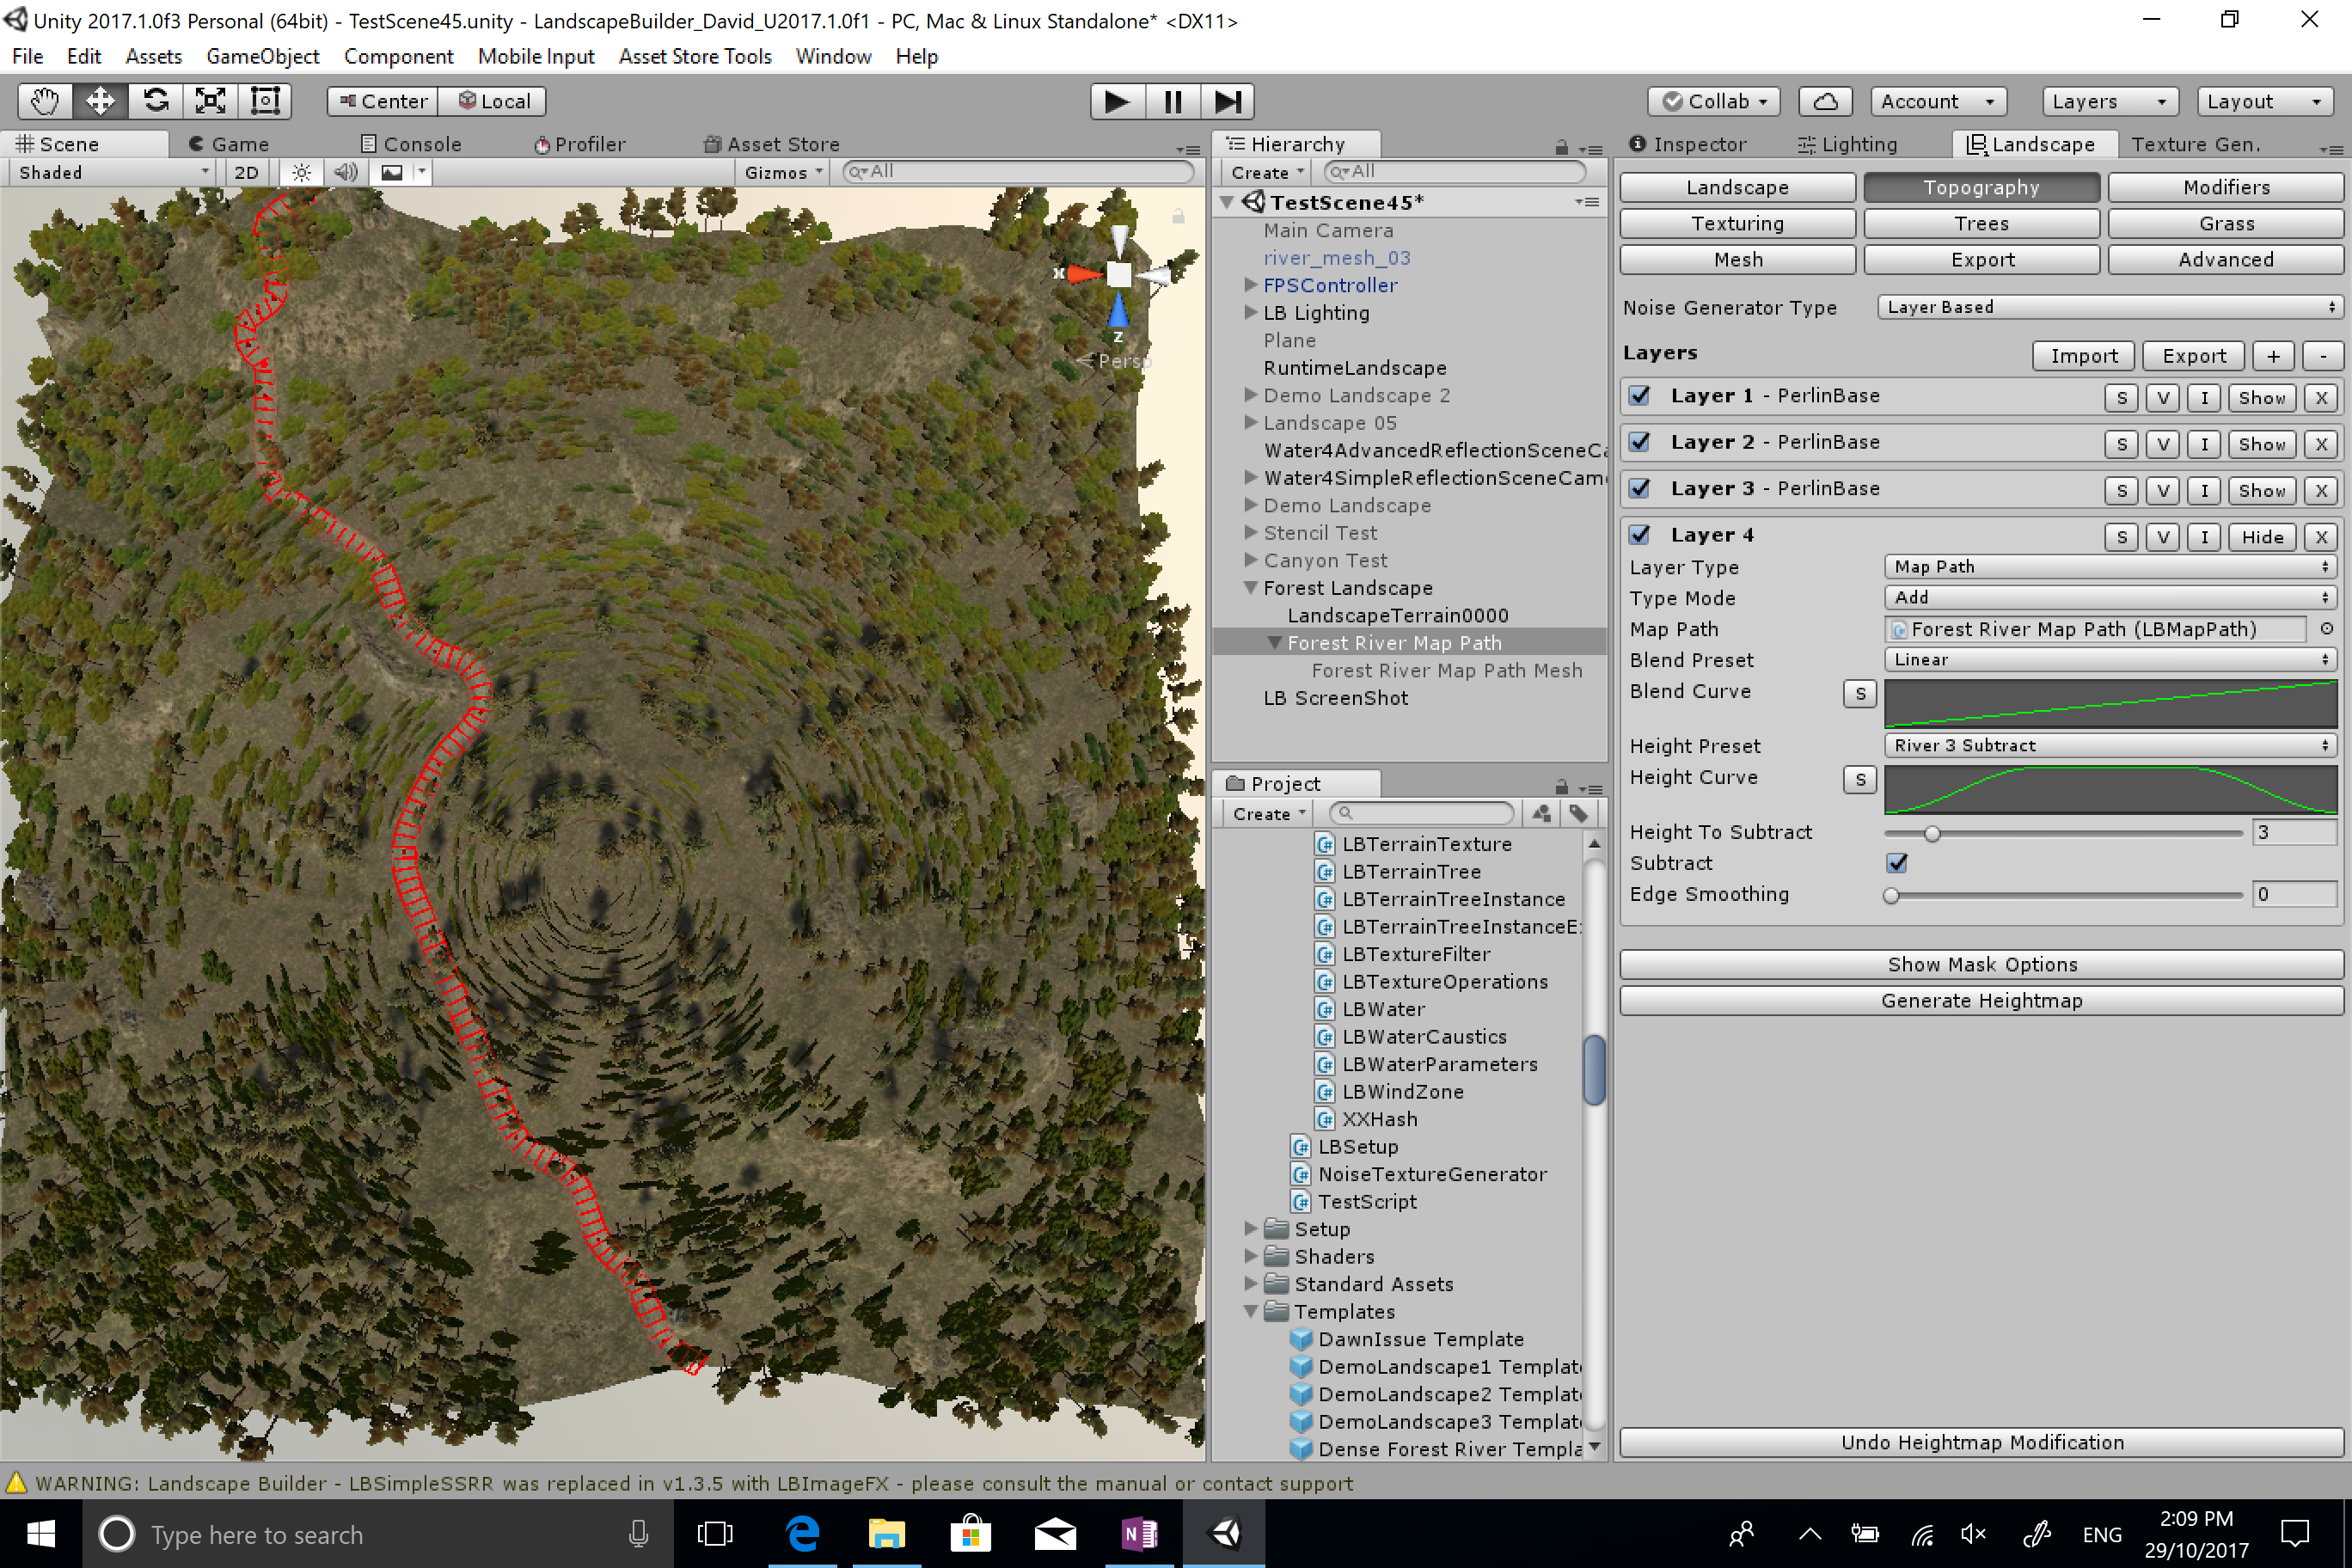 Landscape Builder 2 - Procedural Terrains, U2019 1 Support, Prefab